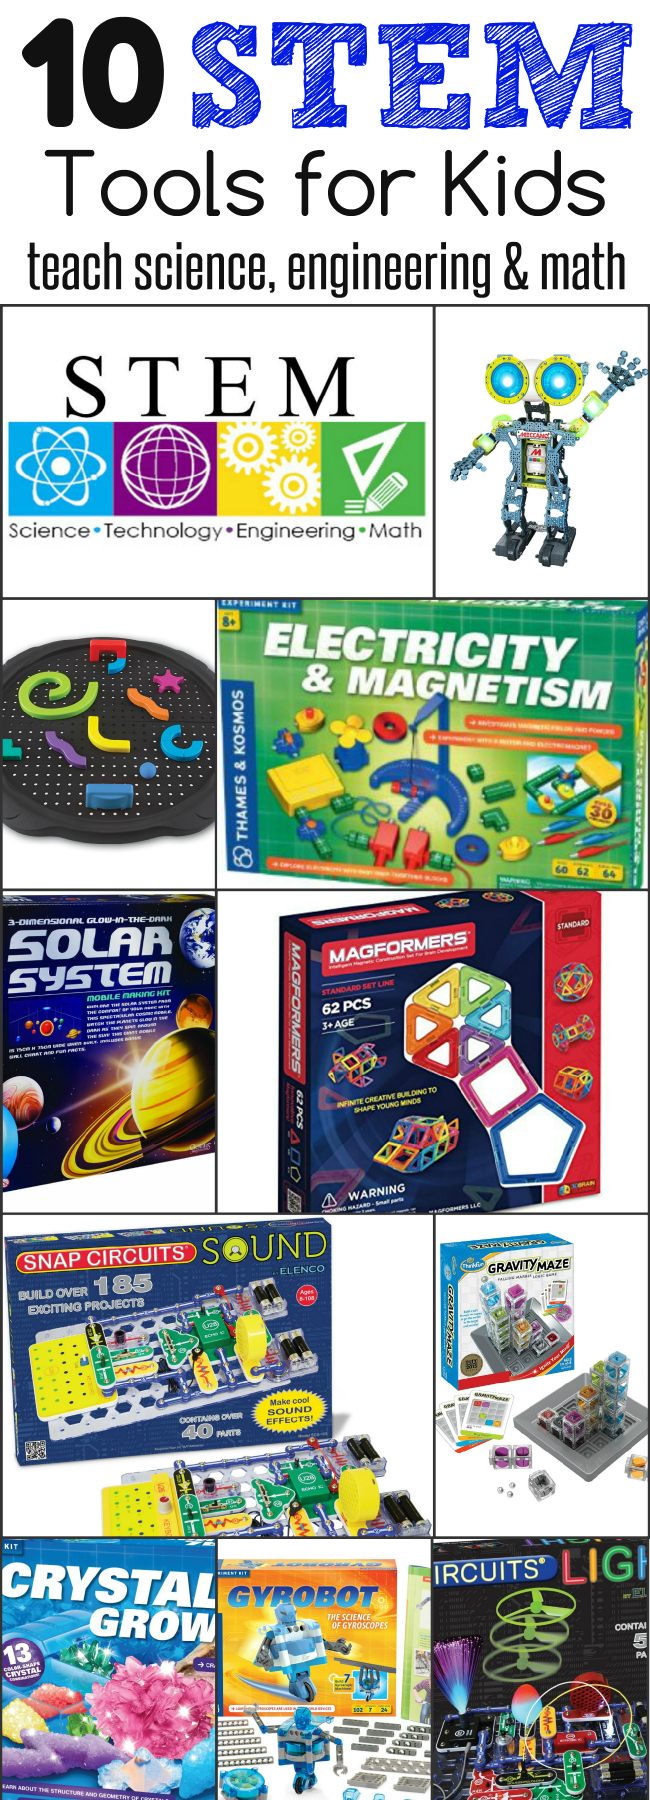 Awesome list - Want to teach kids about science, technology, engineering and math - You'll love this list of 10 STEM Tools for kids